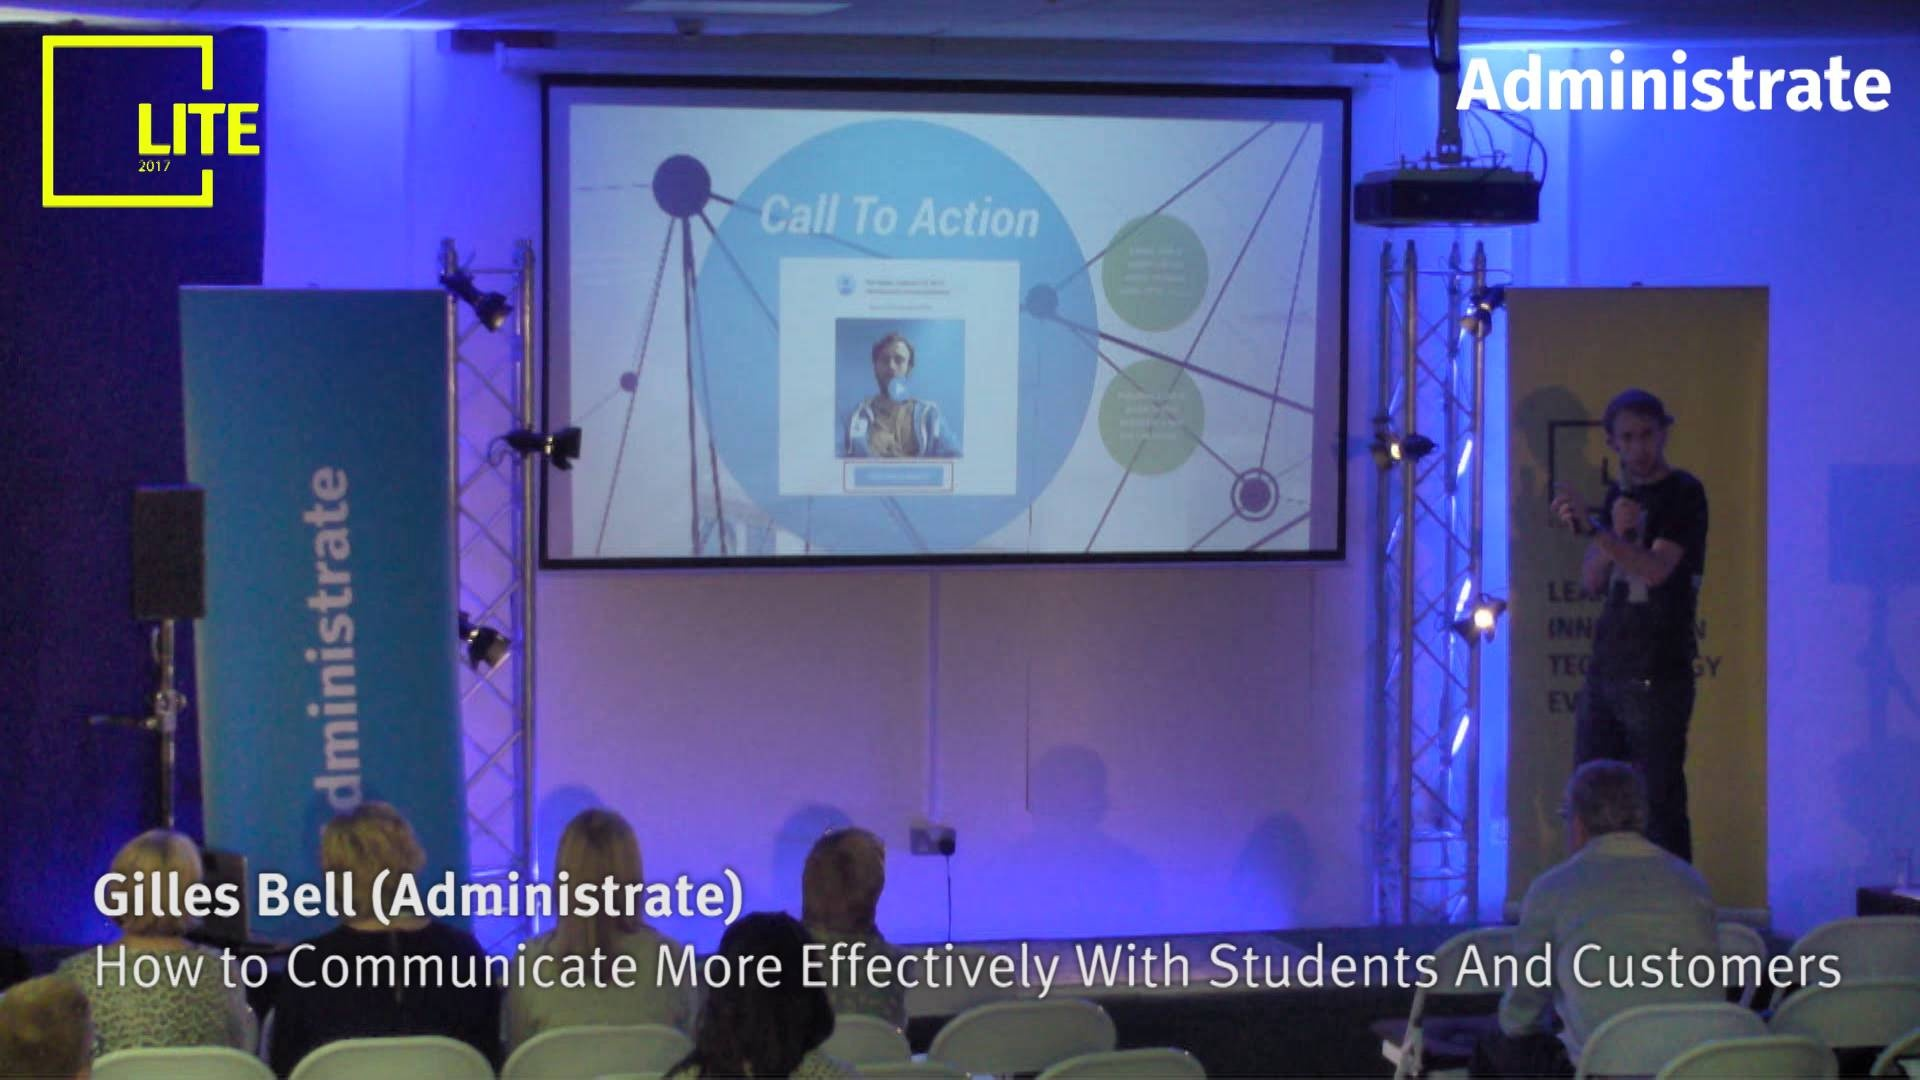 How To Communicate More Effectively with Students And Customers [Gilles Bell]